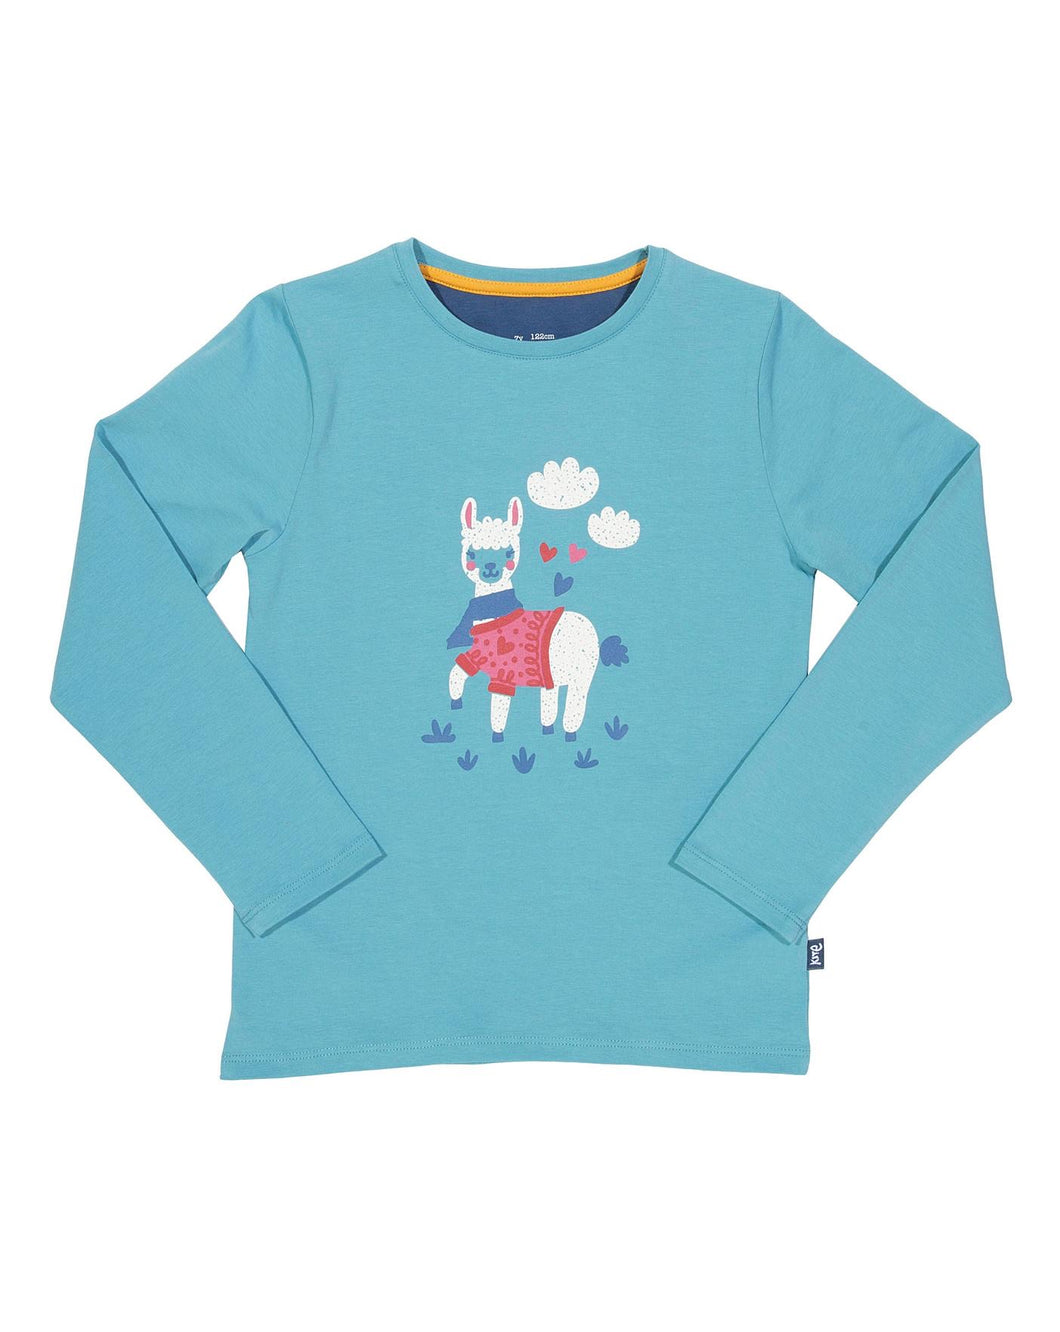 Kite alpaca t shirt